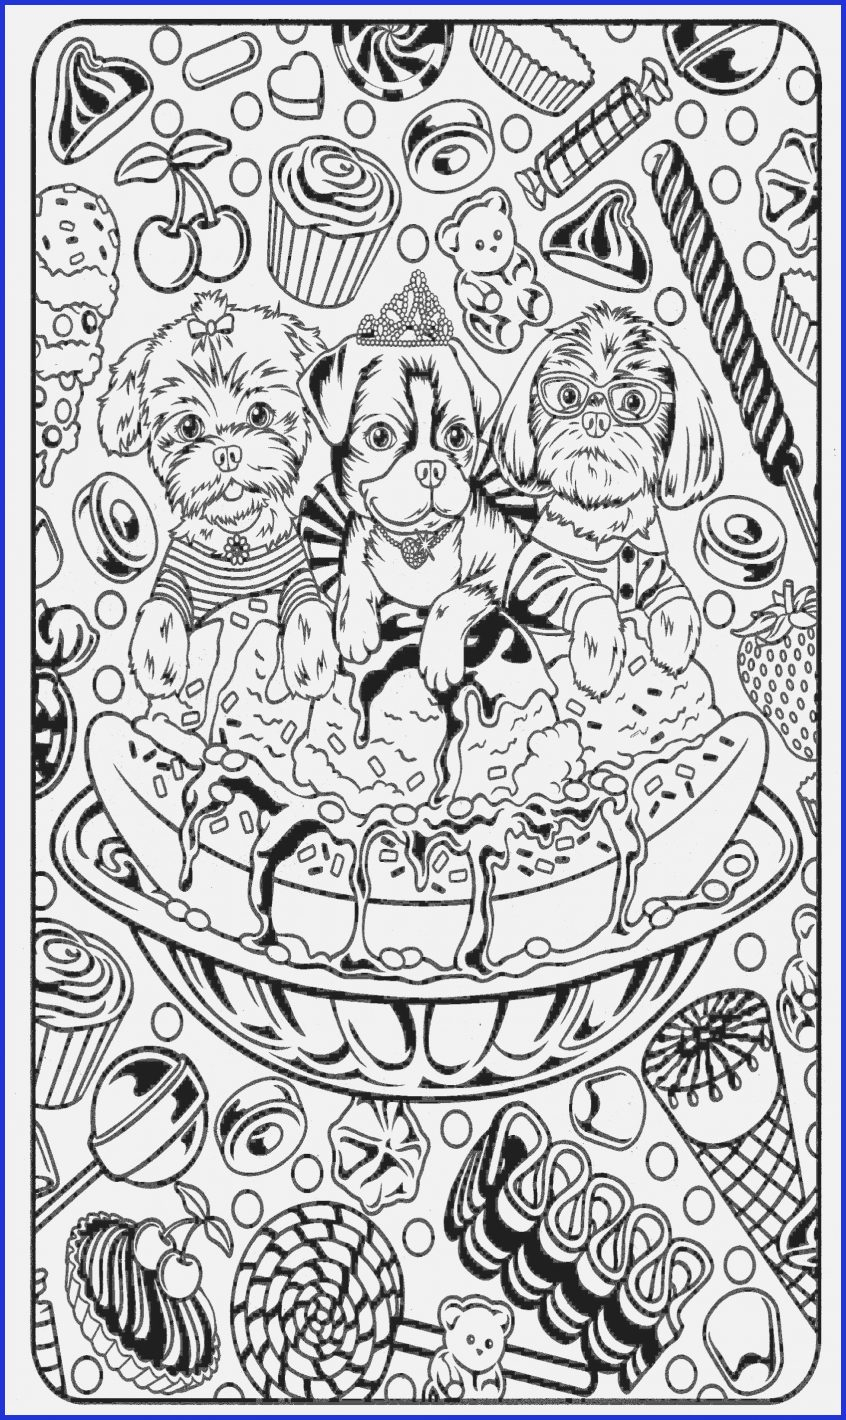 Cute Halloween Coloring Pages Printable Coloring Religious Halloween Coloring Pages Elegant Cute Adult Www